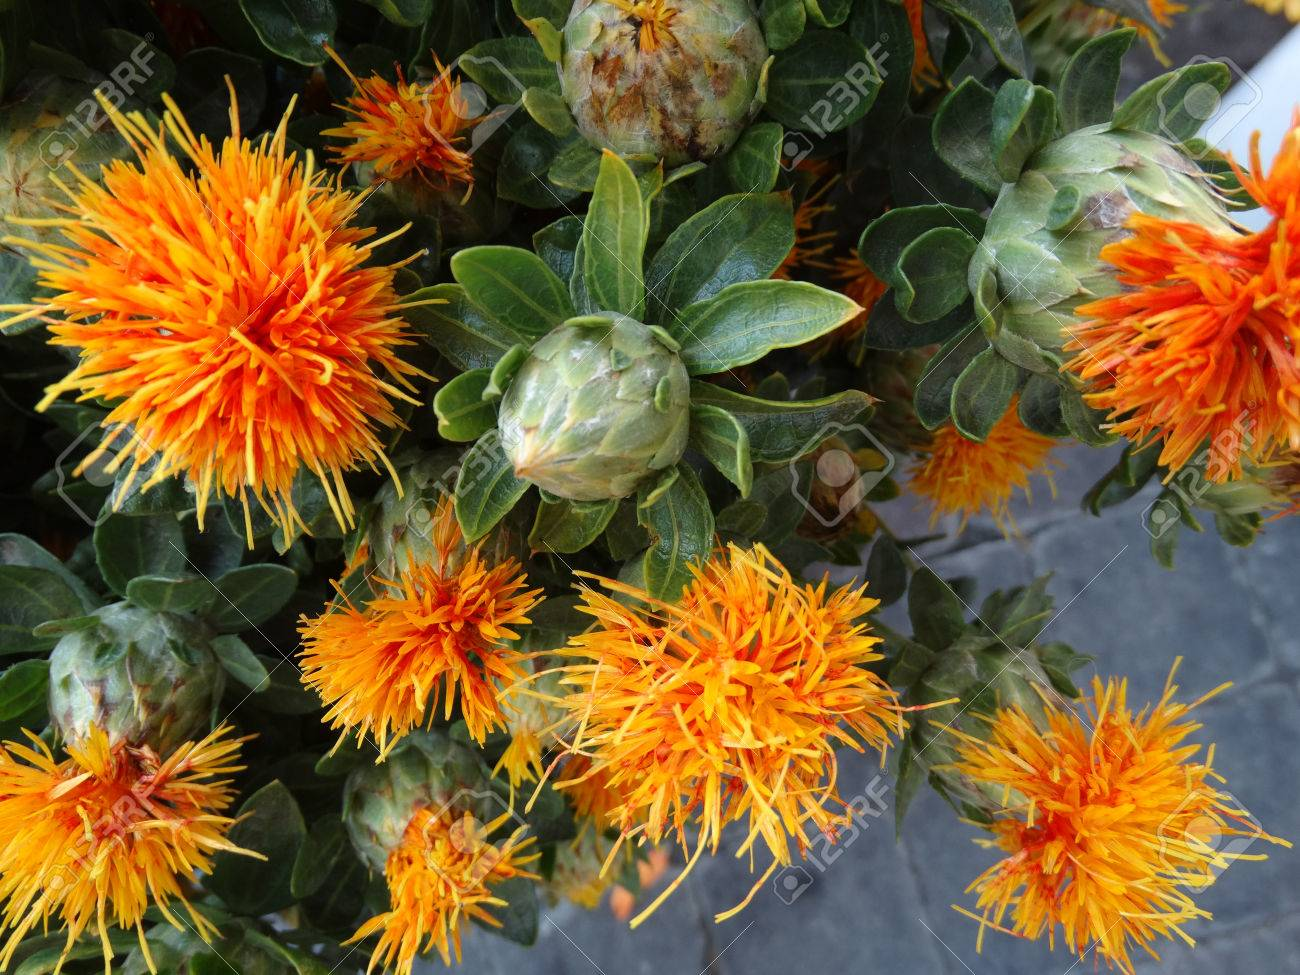 Safflower Carthamus Tinctorius Cultivated Herbaceous Plant Stock Photo Picture And Royalty Free Image Image 34771197